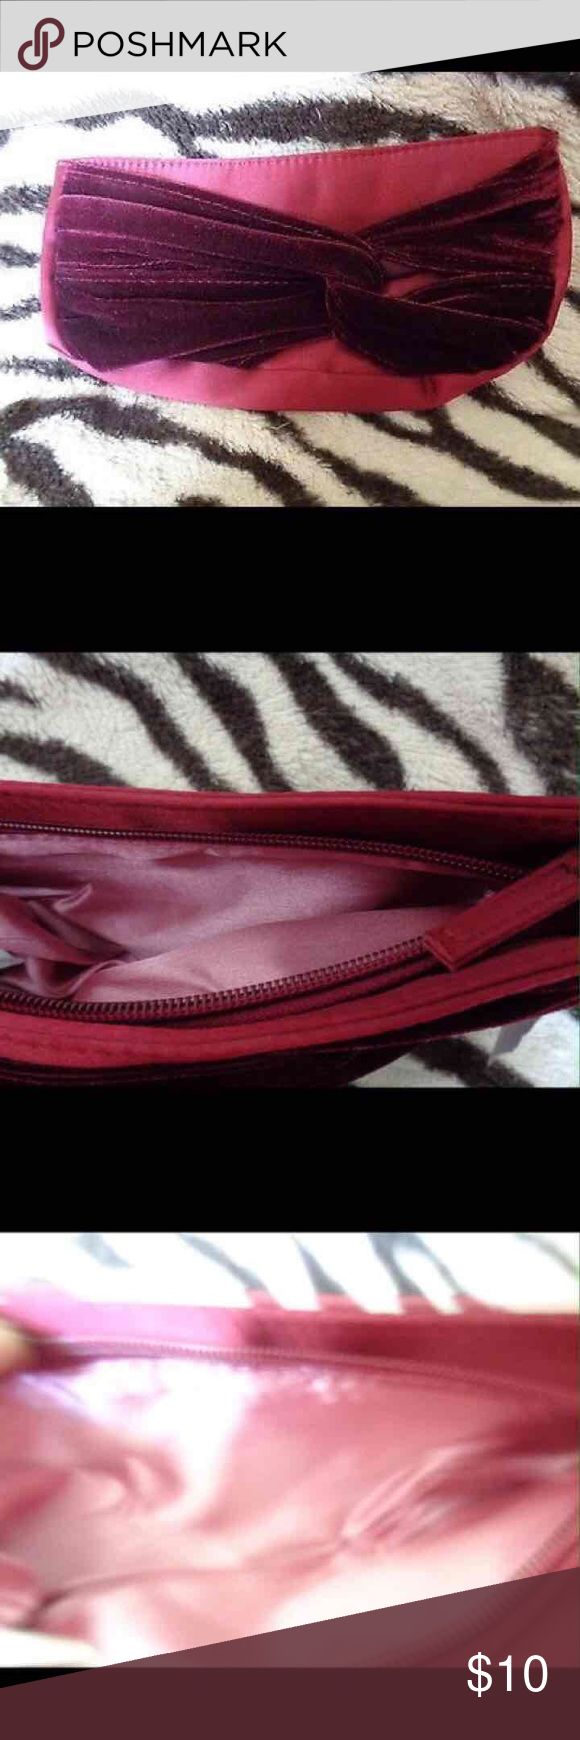 """Avon Maroon Pink Clutch Bag Avon Satin Velvet Look and Maroon Pink Clutch Bag  Darling Avon purse.  The interior pink. Zipper for closure Approximately 5""""height x 10""""length        ♡GOD BLESS♡ ☆BUNDLE AND SAVE☆ Bags Clutches & Wristlets"""